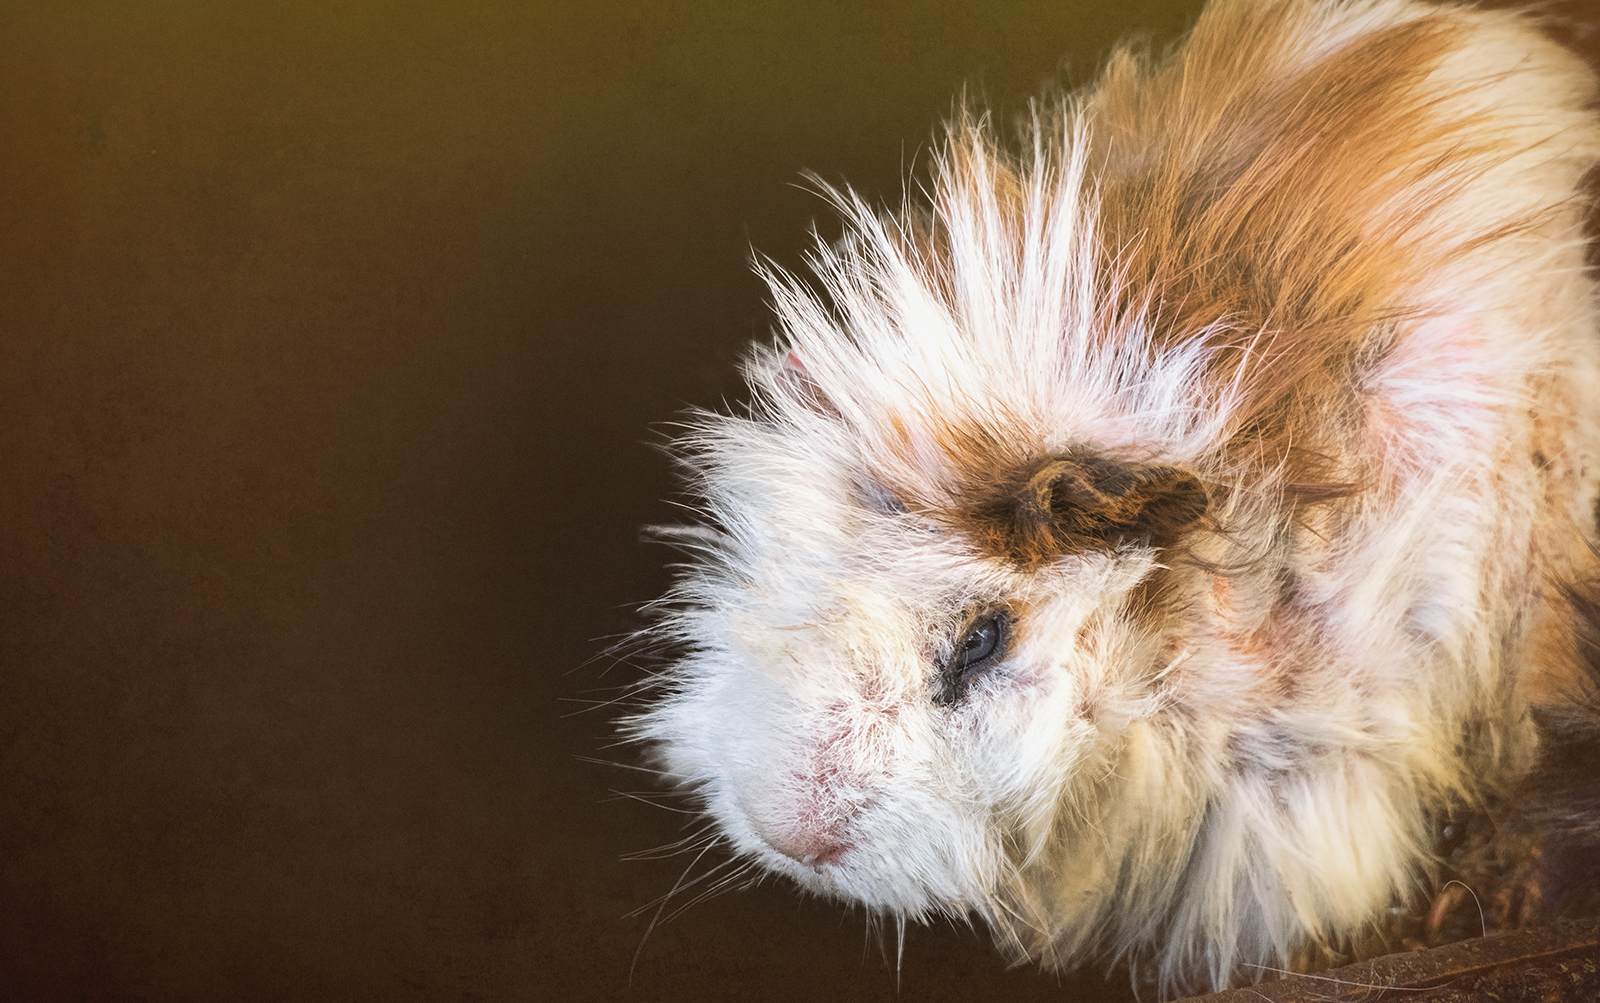 Portrait of a Guinea Pig